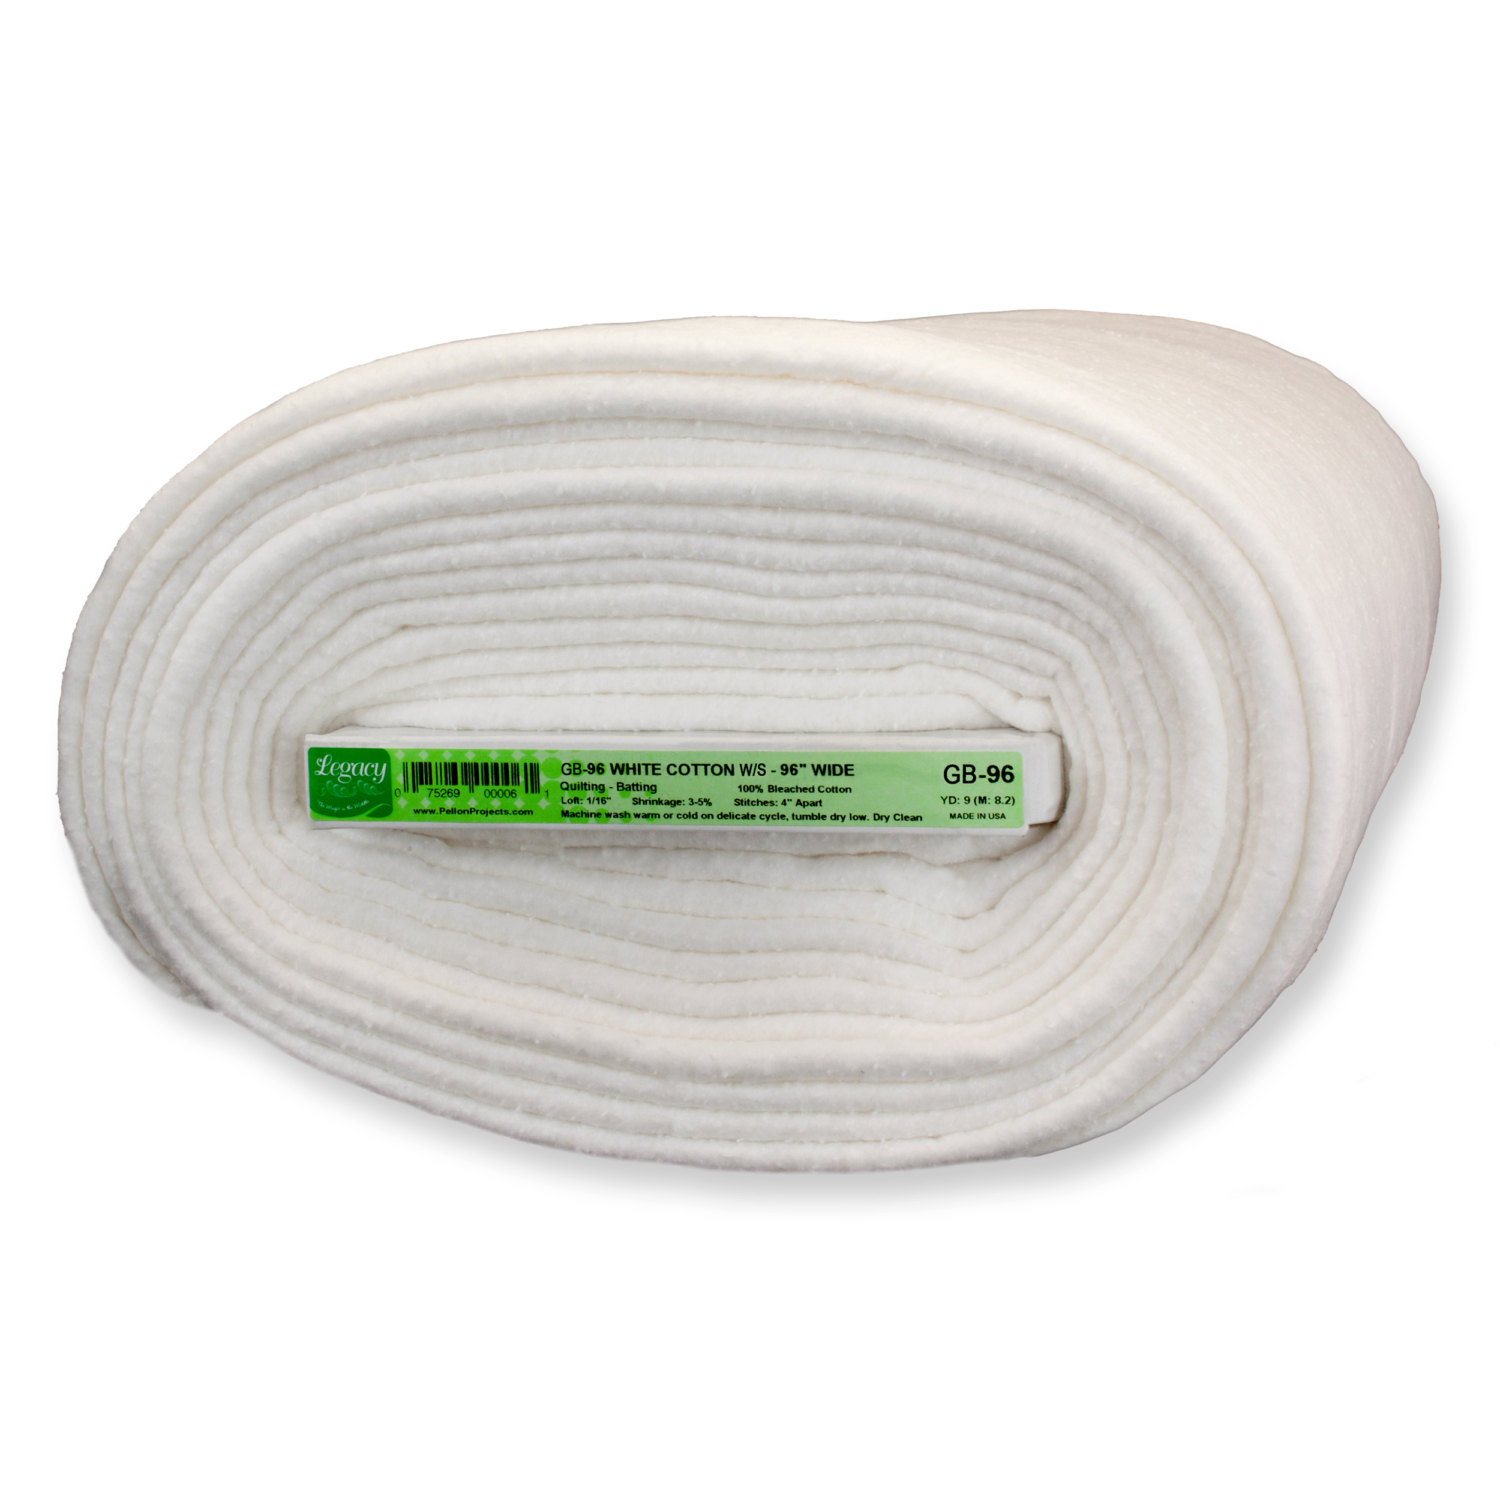 Pellon GB-96 100% Bleached White Cotton Batting with Scrim 9 Yard x 96 Board